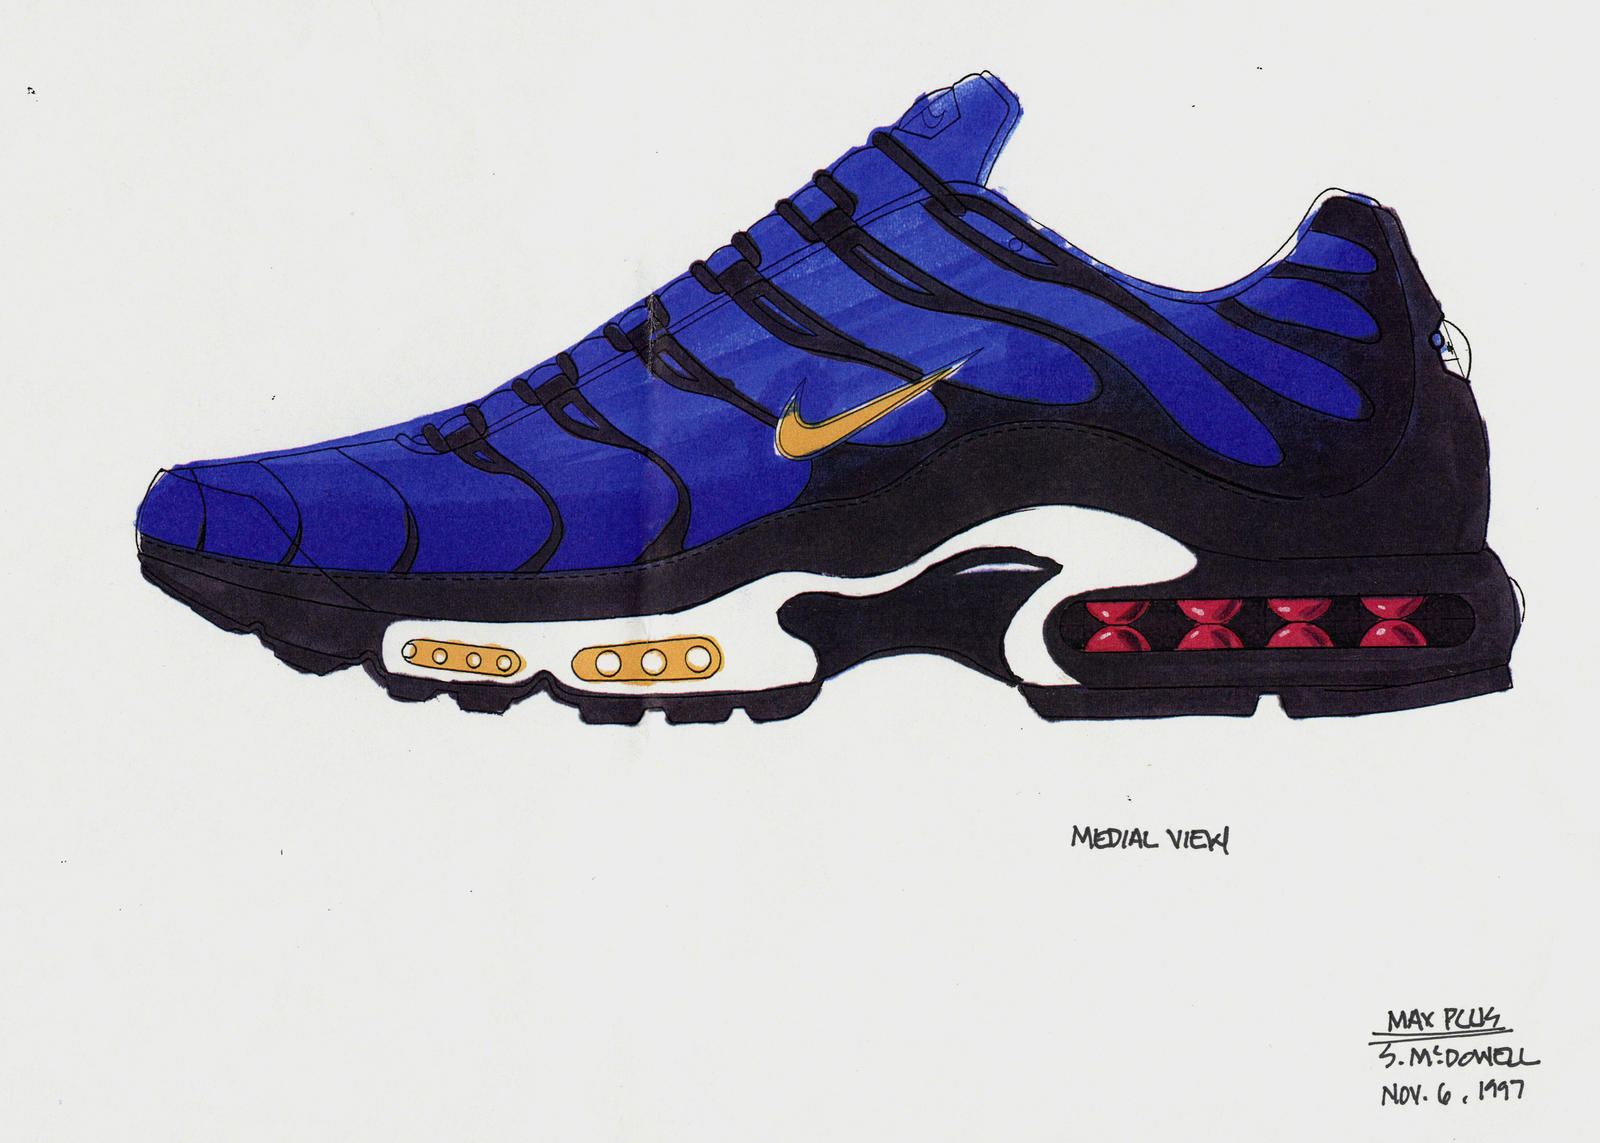 4f178fe73b93 The Untold Story of the Nike Air Max Plus - Nike News